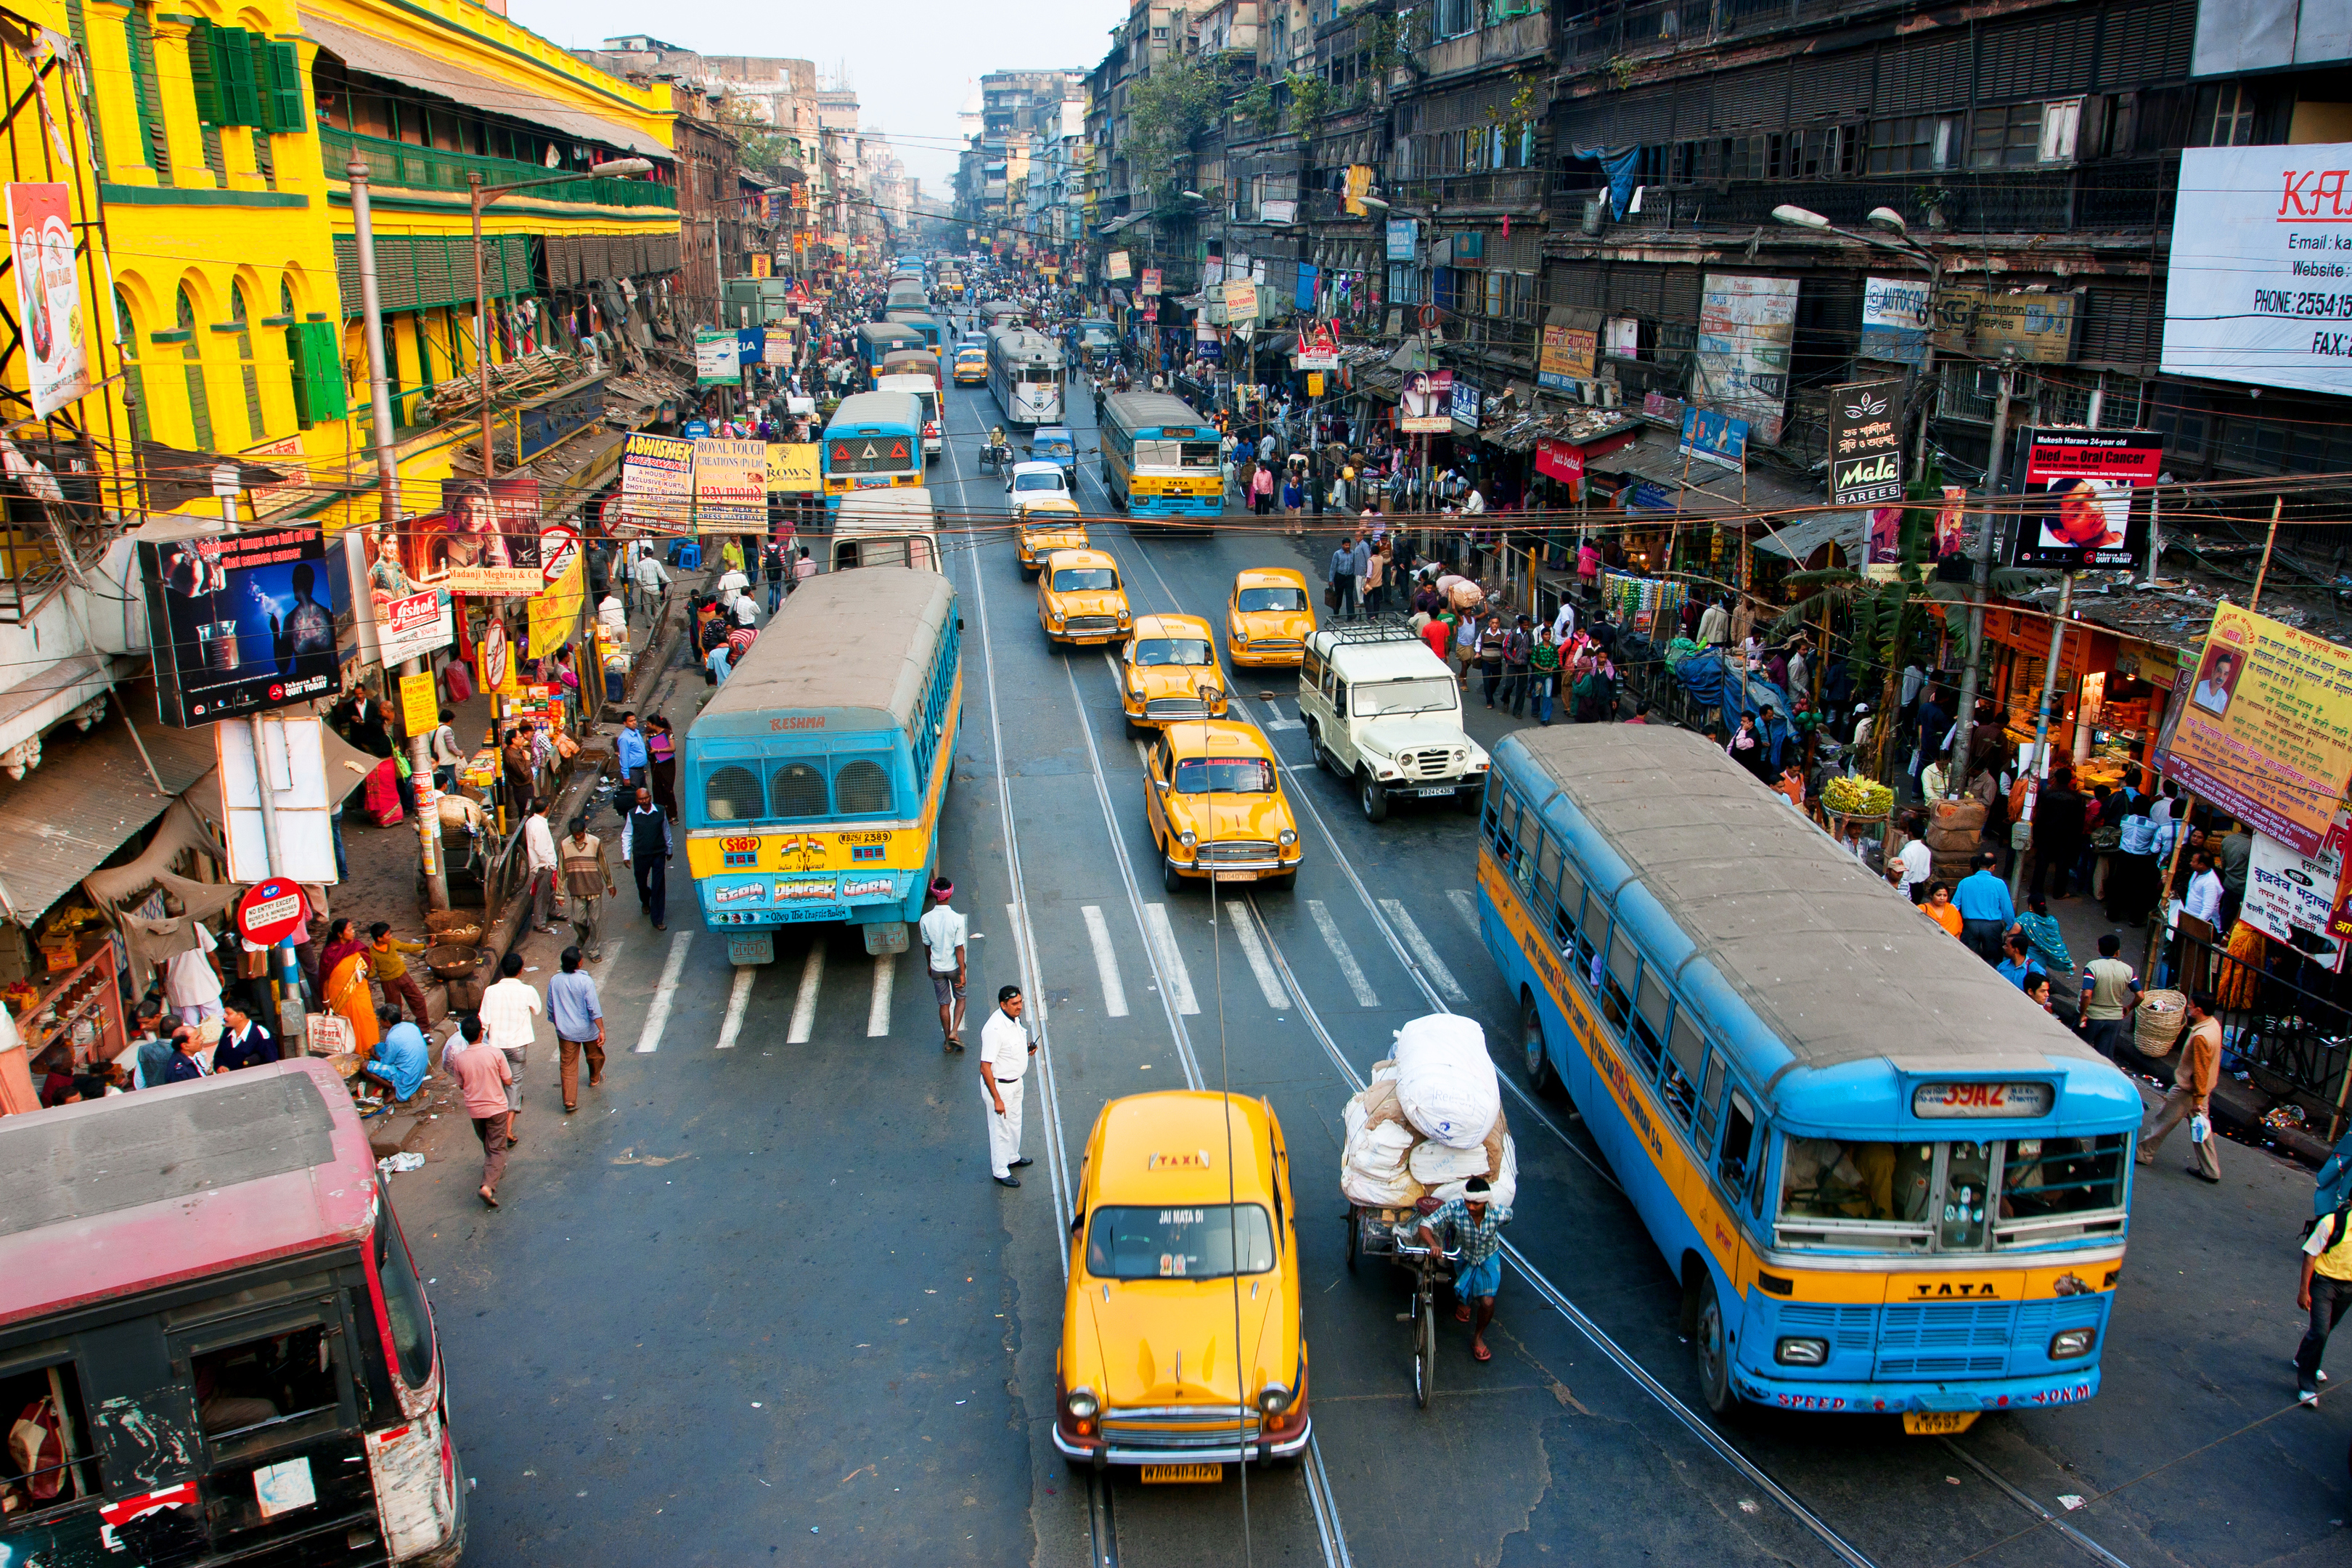 Graeme Macrae Burnet, Val McDermid and Abir Mukherjee are travelling to Kolkata for the literary festival (Getty Images/iStock)